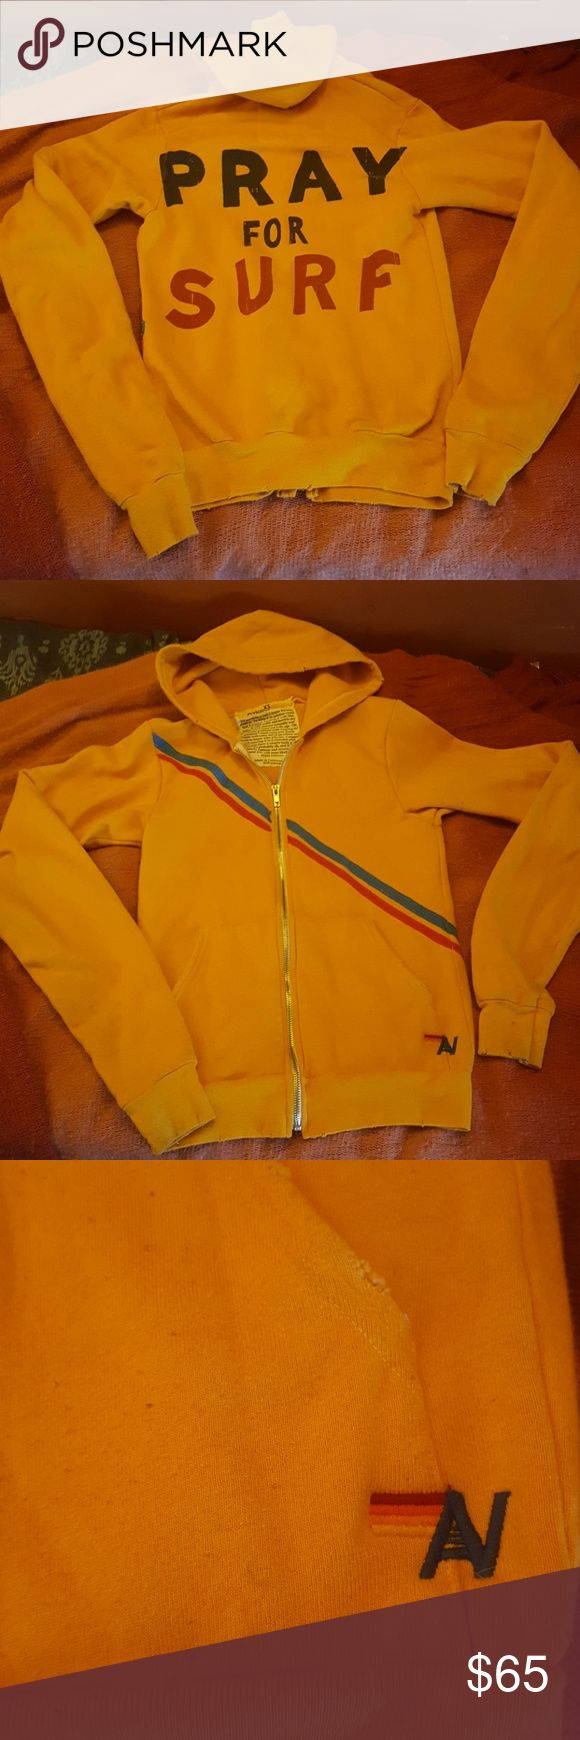 "Aviator Nation Pray For Surf Hoodie Super rad, classic, Pray For Surf hoodie by Aviator Nation. Awesome golden yellow color no longer made. Unisex size XS. Measures 15"" from pit to pit. Has some pilling, and is missing the hood string, but is in excellent shape. No stains, no holes. I love this thing, but I recently acquired one that fits better. If you have any questions, please ask! Thanks! Aviator Nation Tops Sweatshirts & Hoodies"